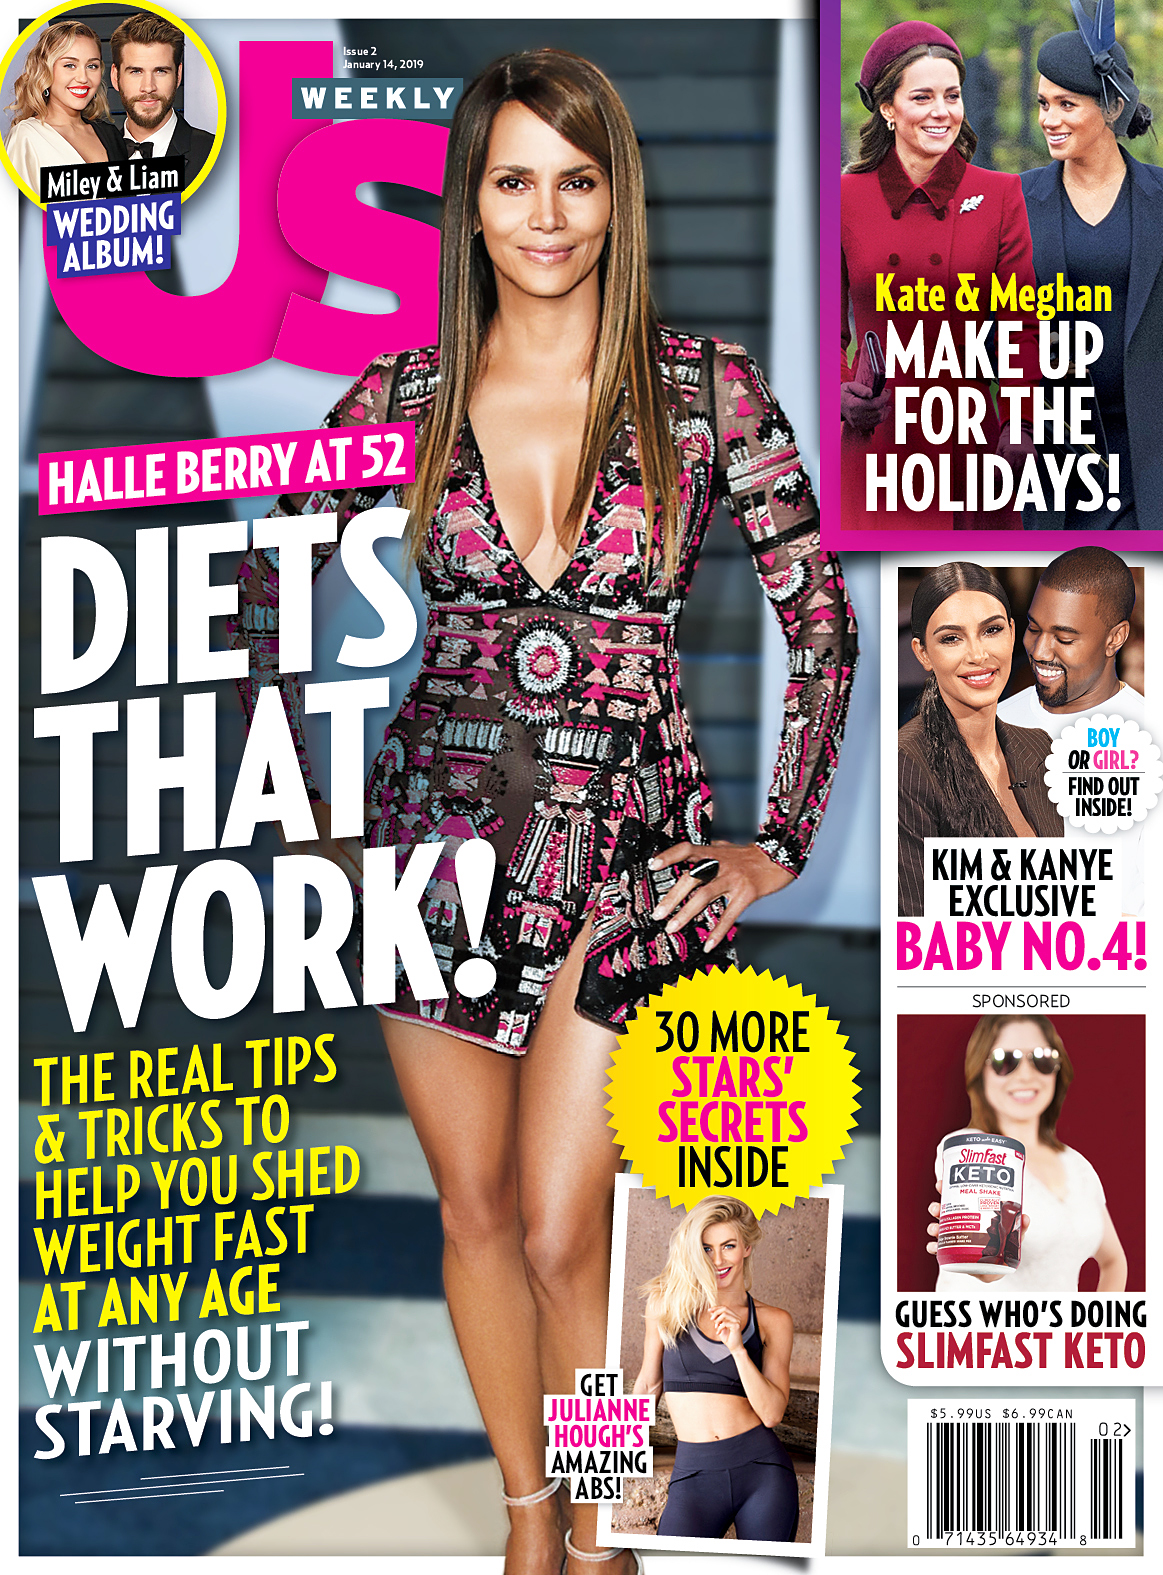 Us Weekly Cover Halle Berry Diets